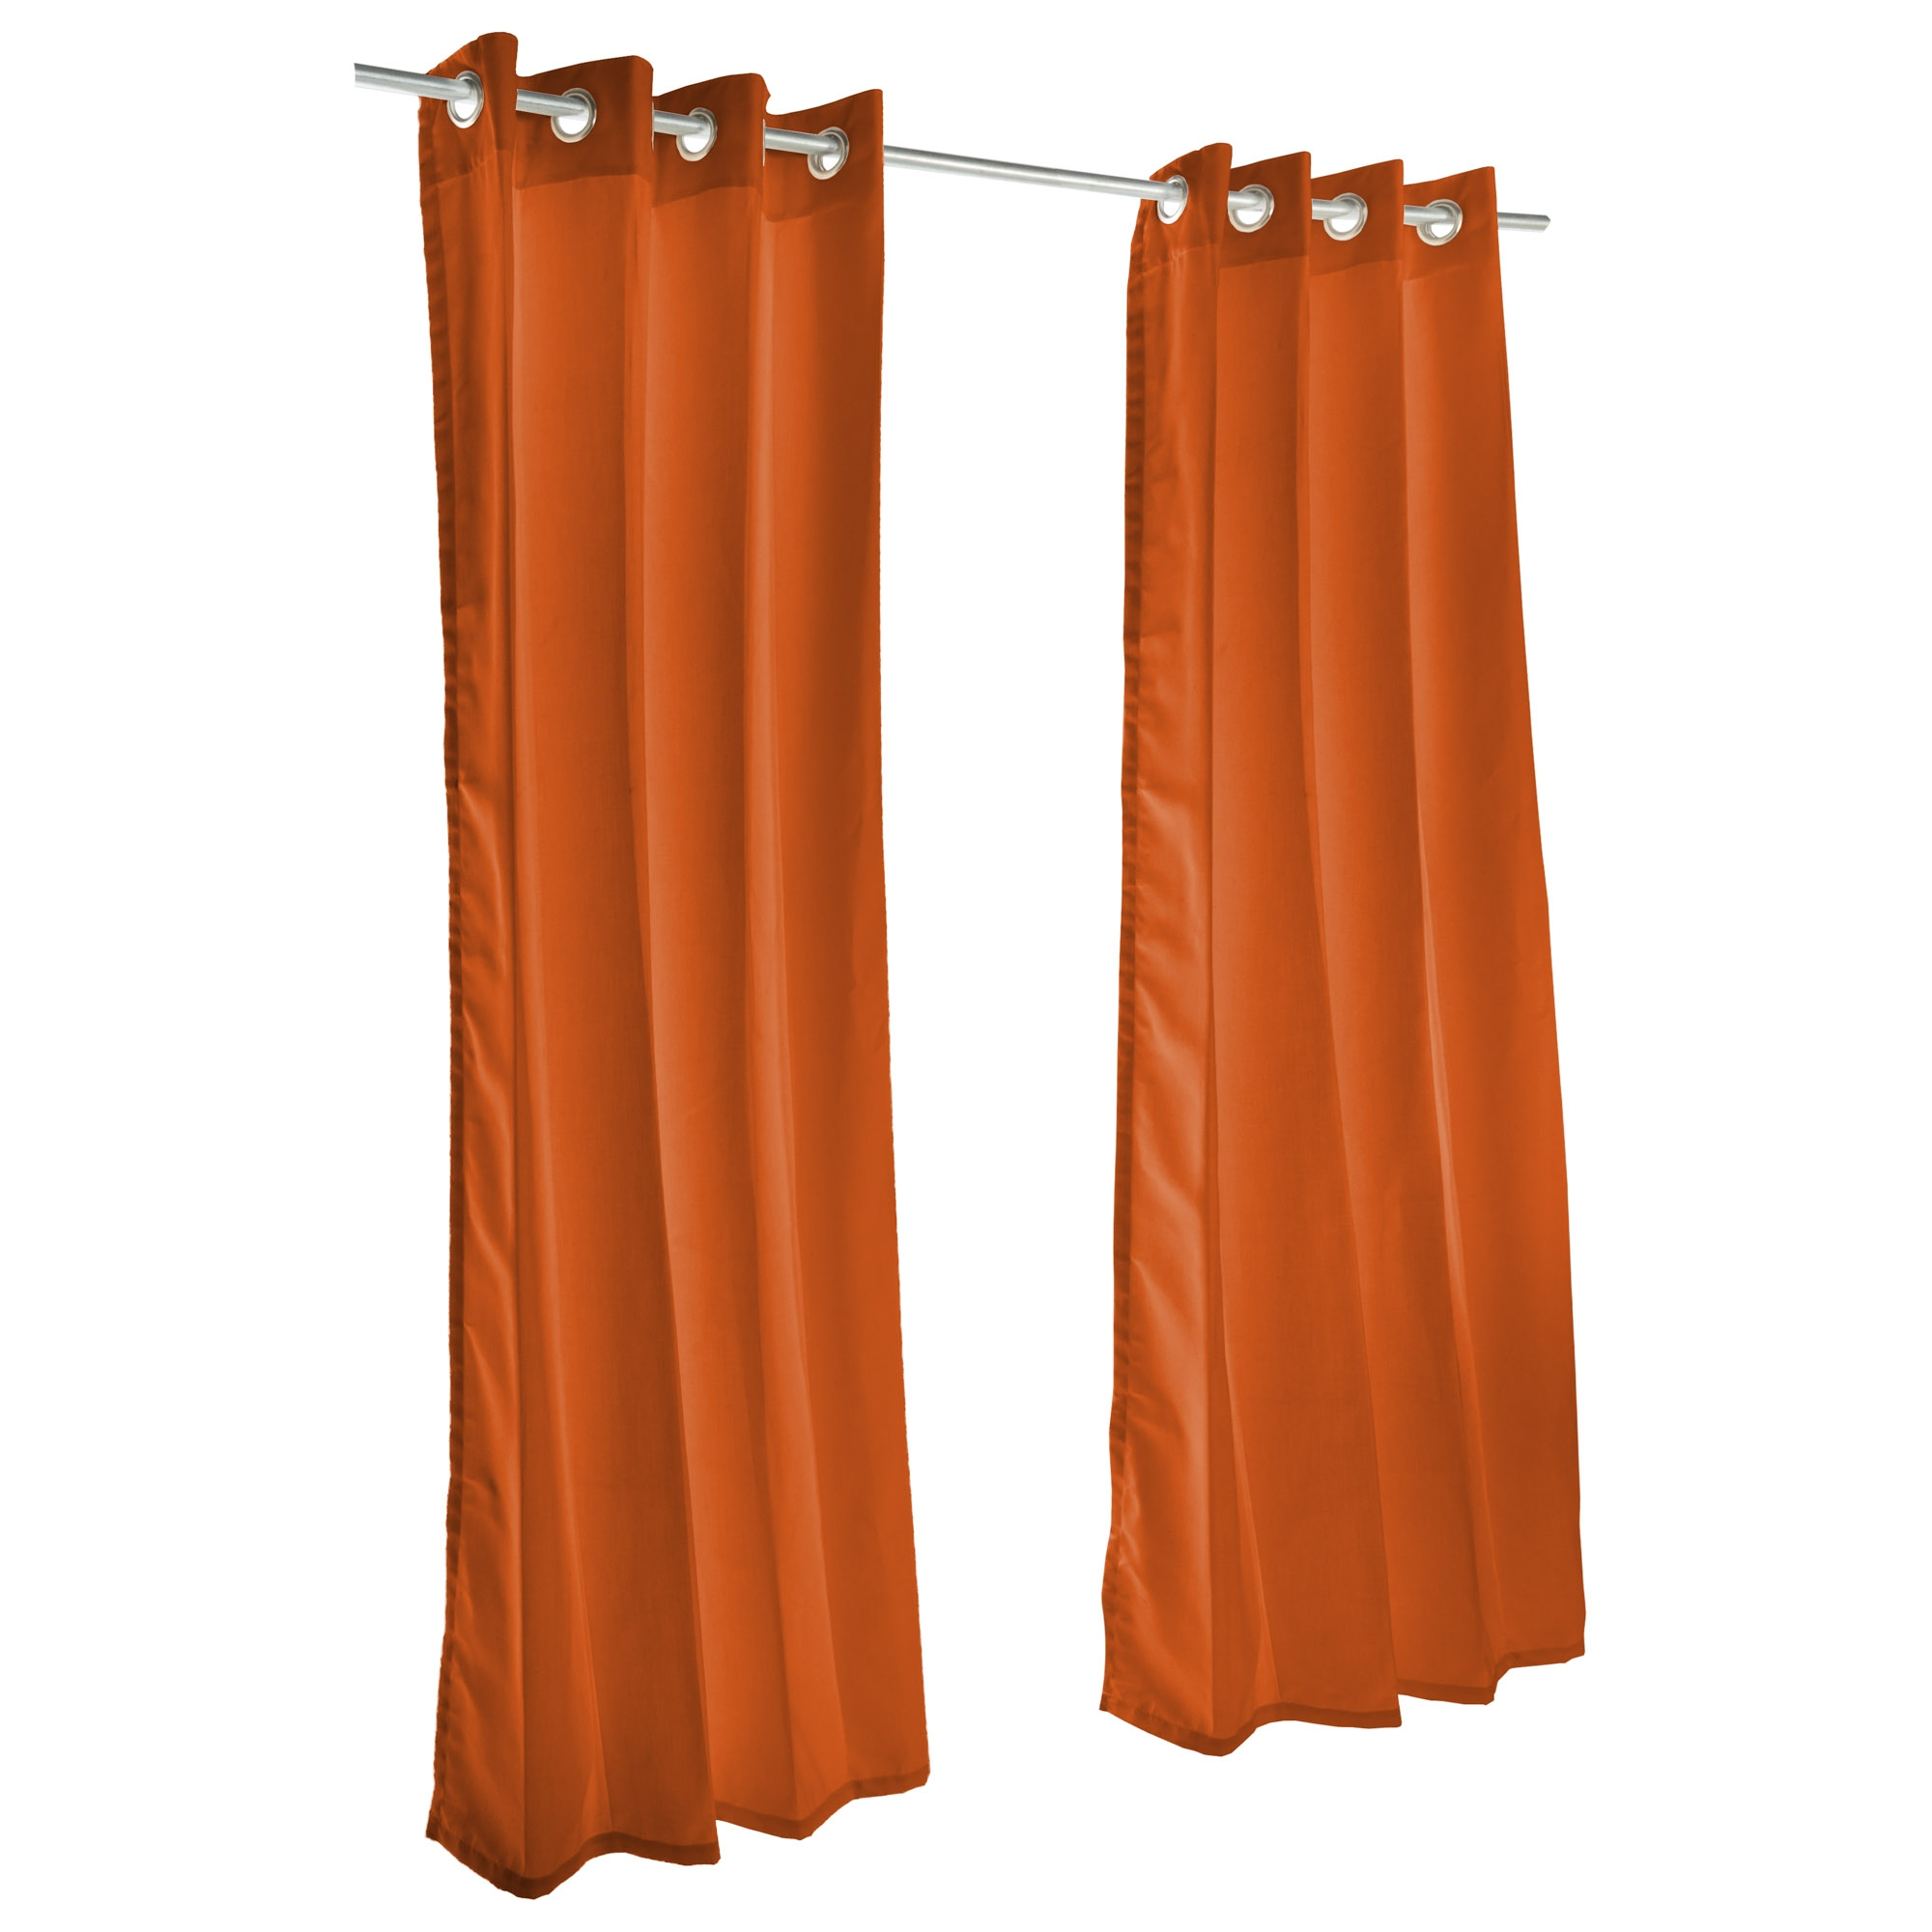 Sunbrella Panels | Sunbrella Curtains | Sunbrella Fabric Cushions